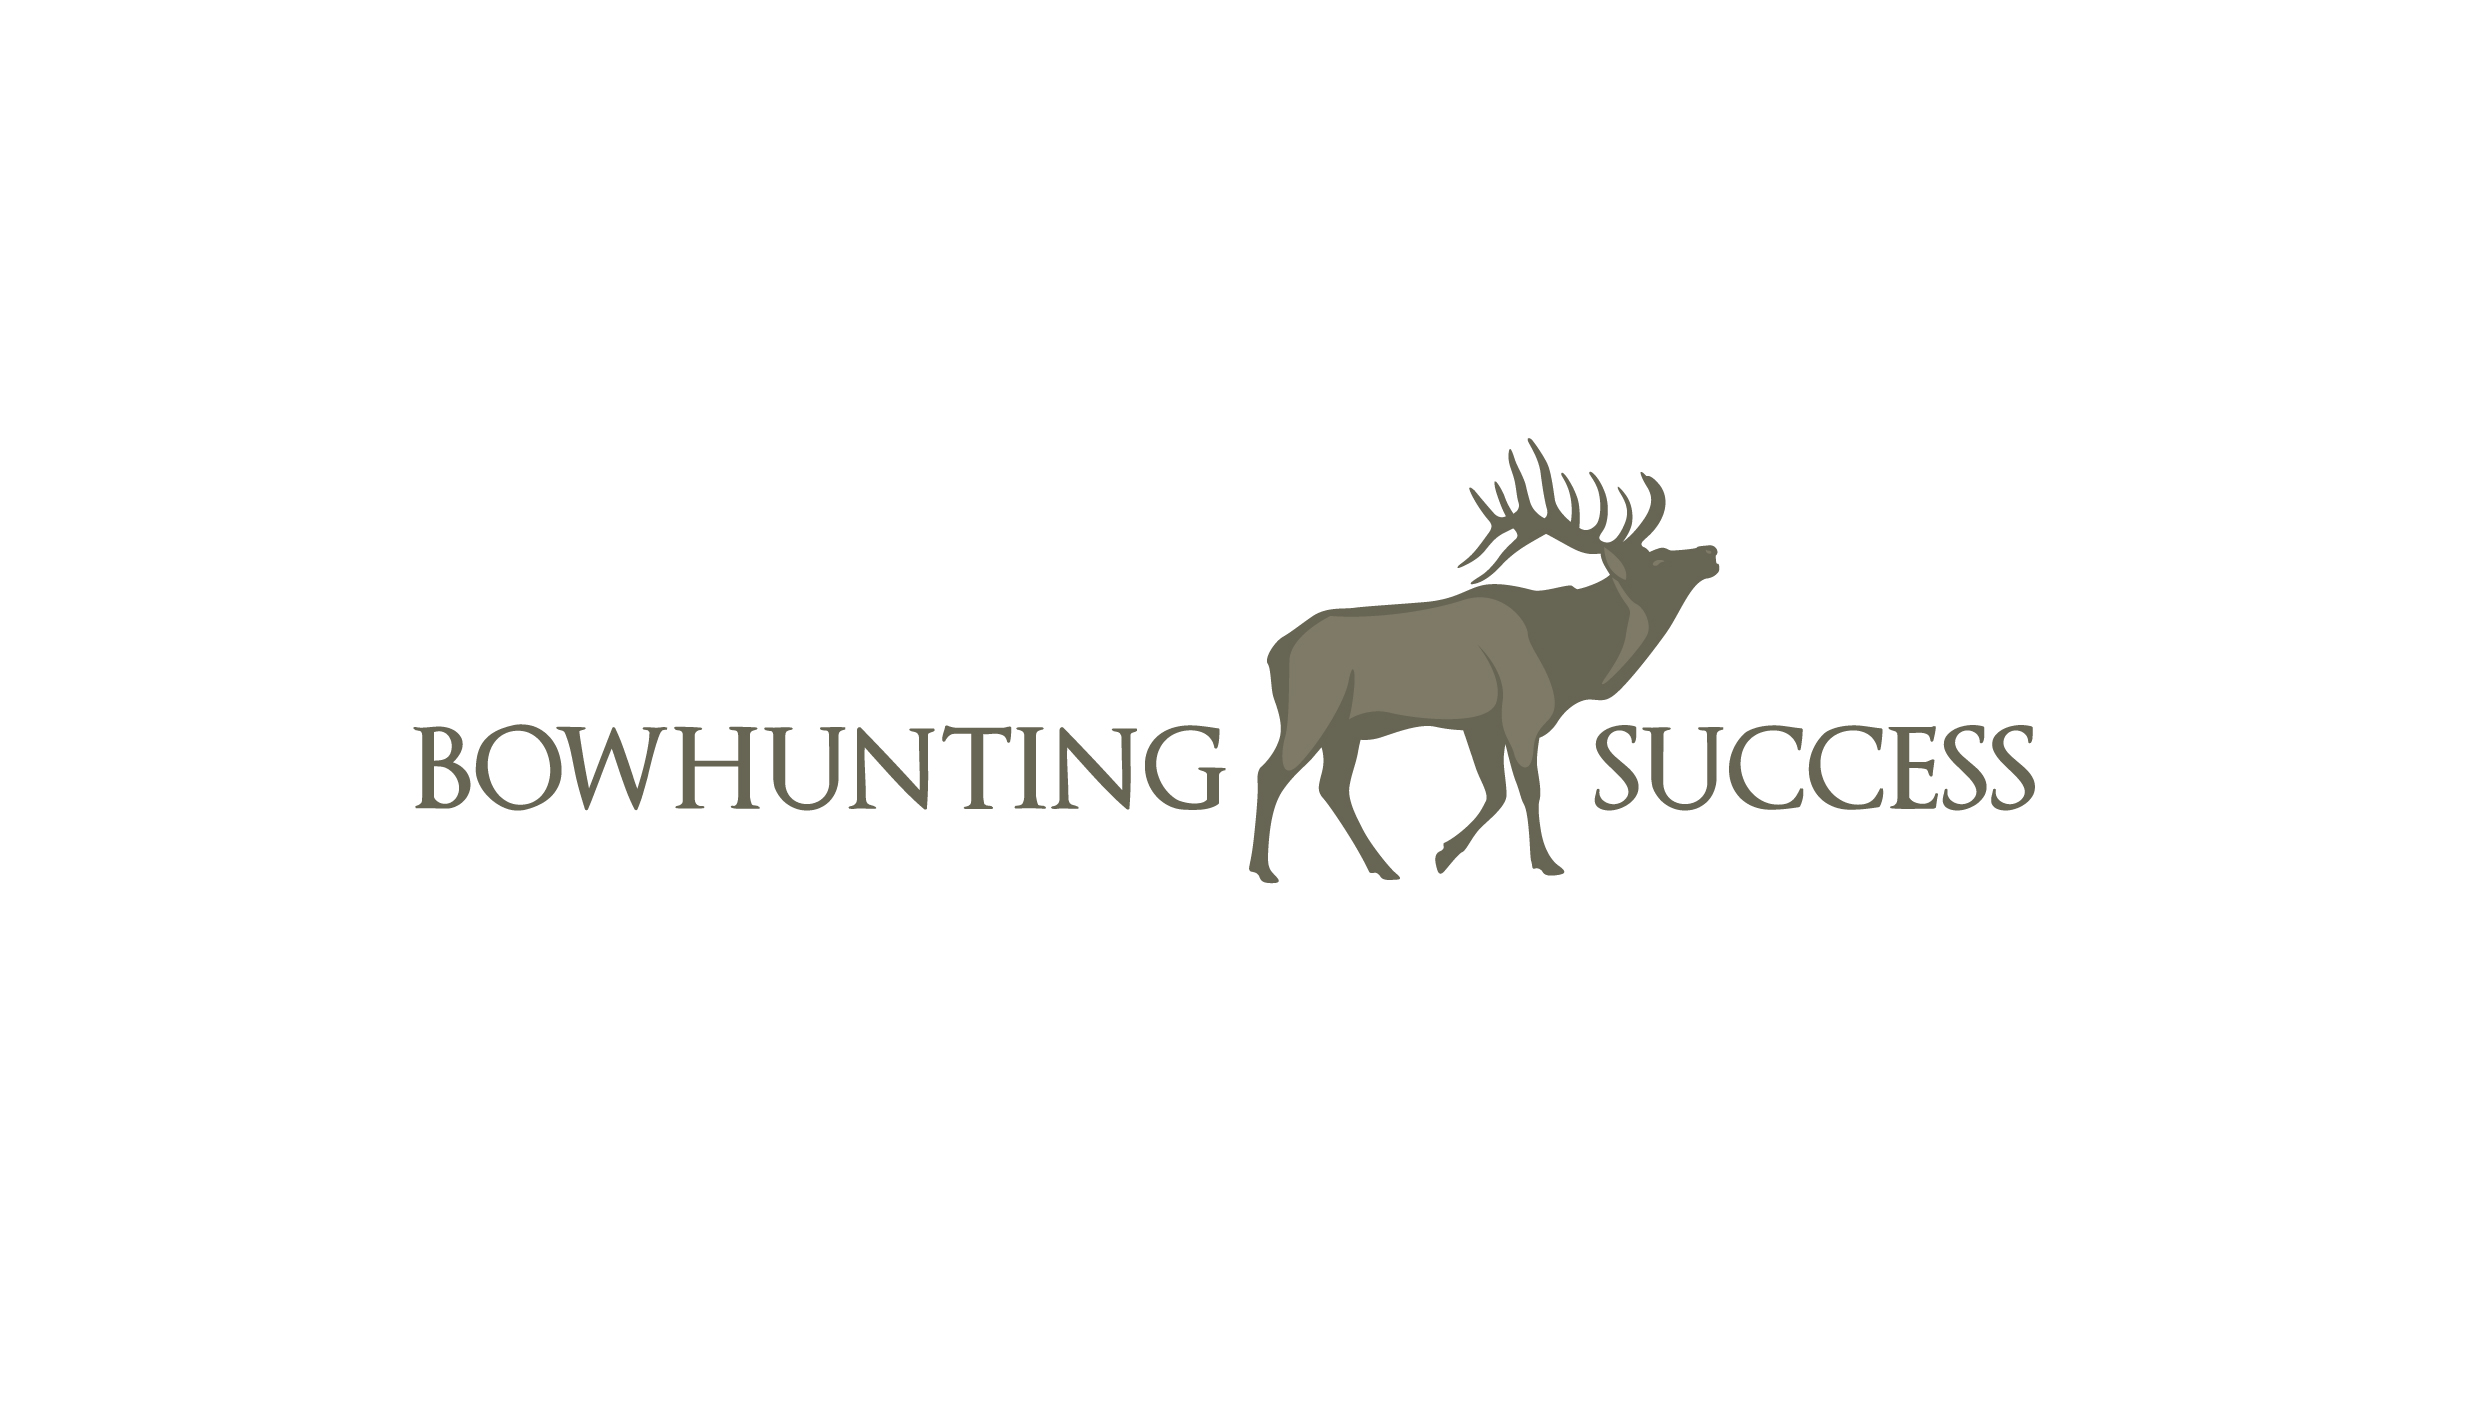 Bowhunting success-01